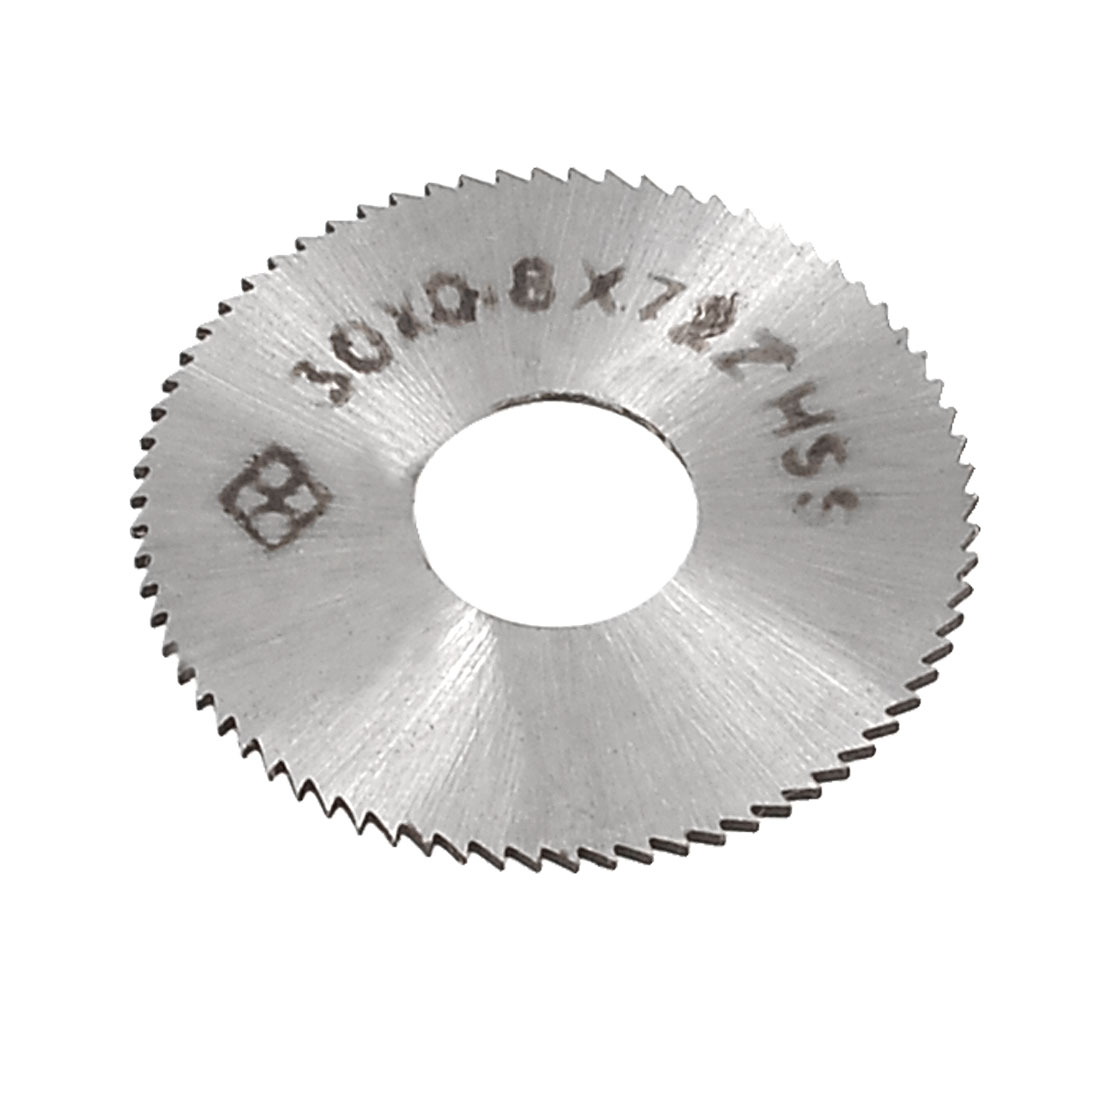 "HSS 1 5/32"" 30mm OD 0.8mm Thickness Toothed 72T Slitting Saw"